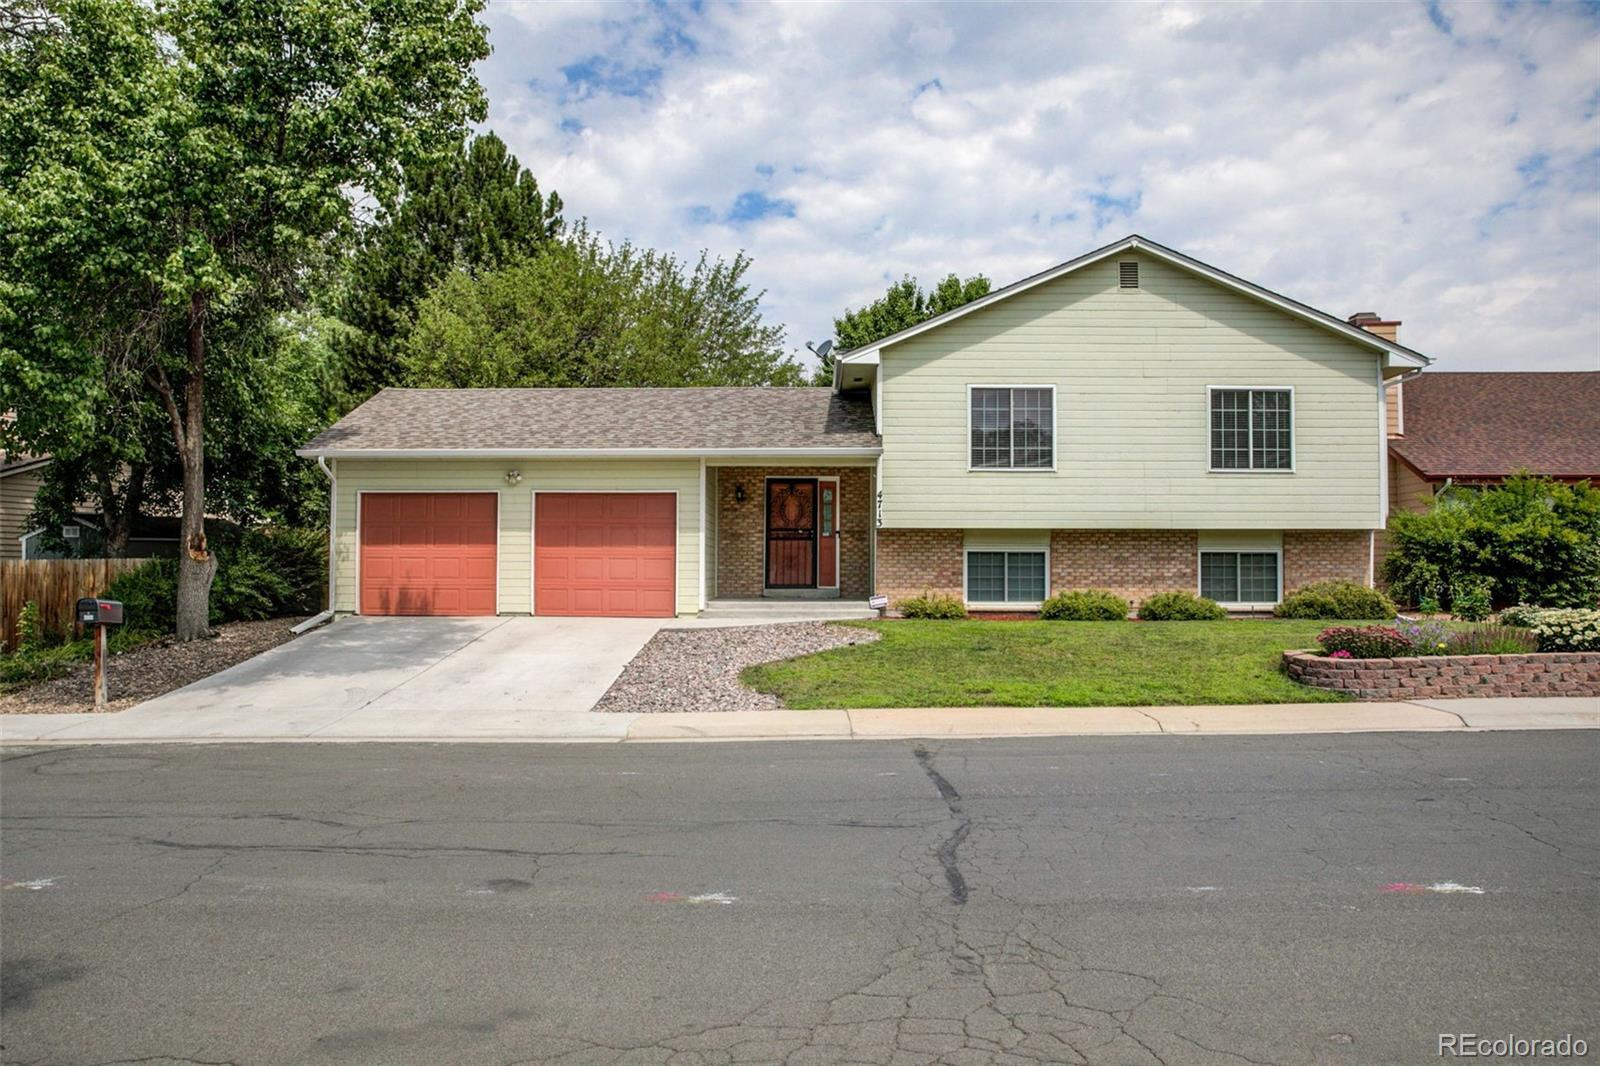 4713 W 69th Avenue, Westminster, CO 80030 - #: 9845819